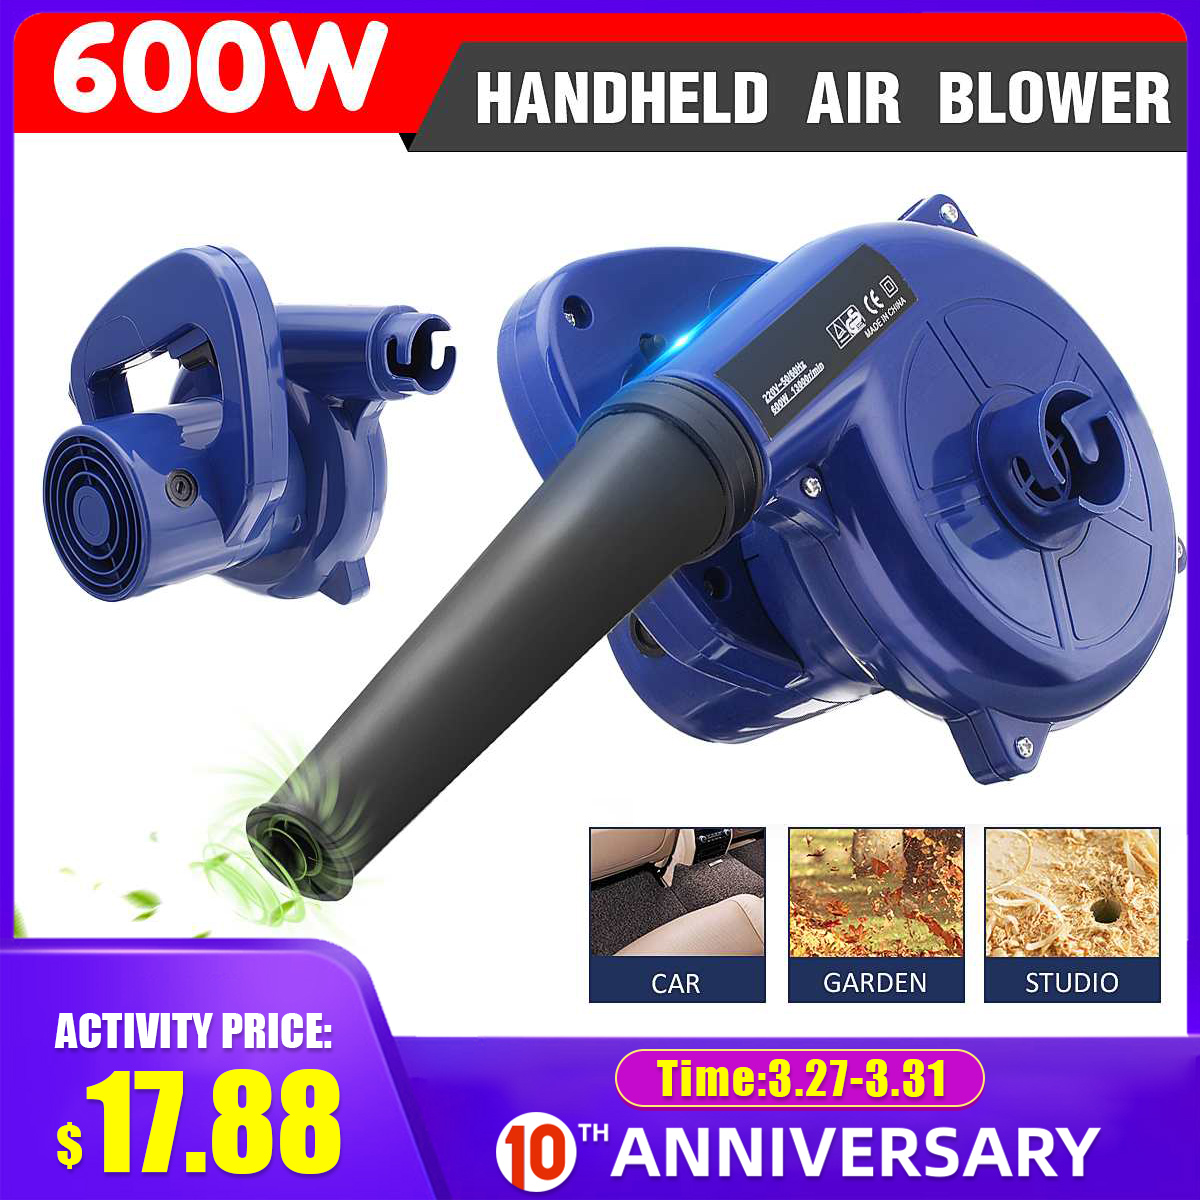 600W 220V Electric Handheld Blower Vacuum Computer Cleaner Electric Industrial Air Blower Dust Blowing Dust Collector For Office